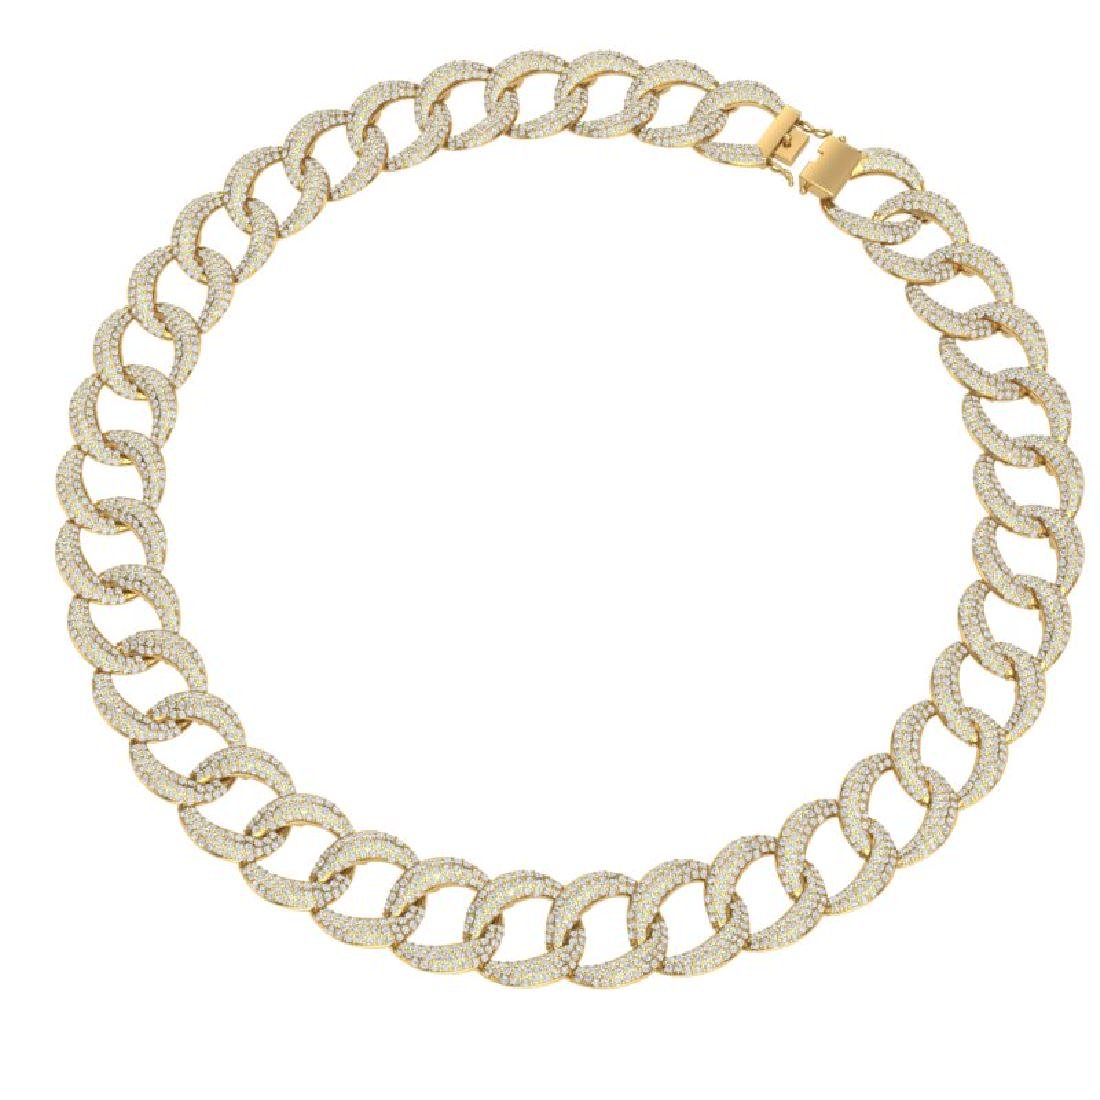 22 CTW Certified VS/SI Diamond Necklace 18K Yellow Gold - 2